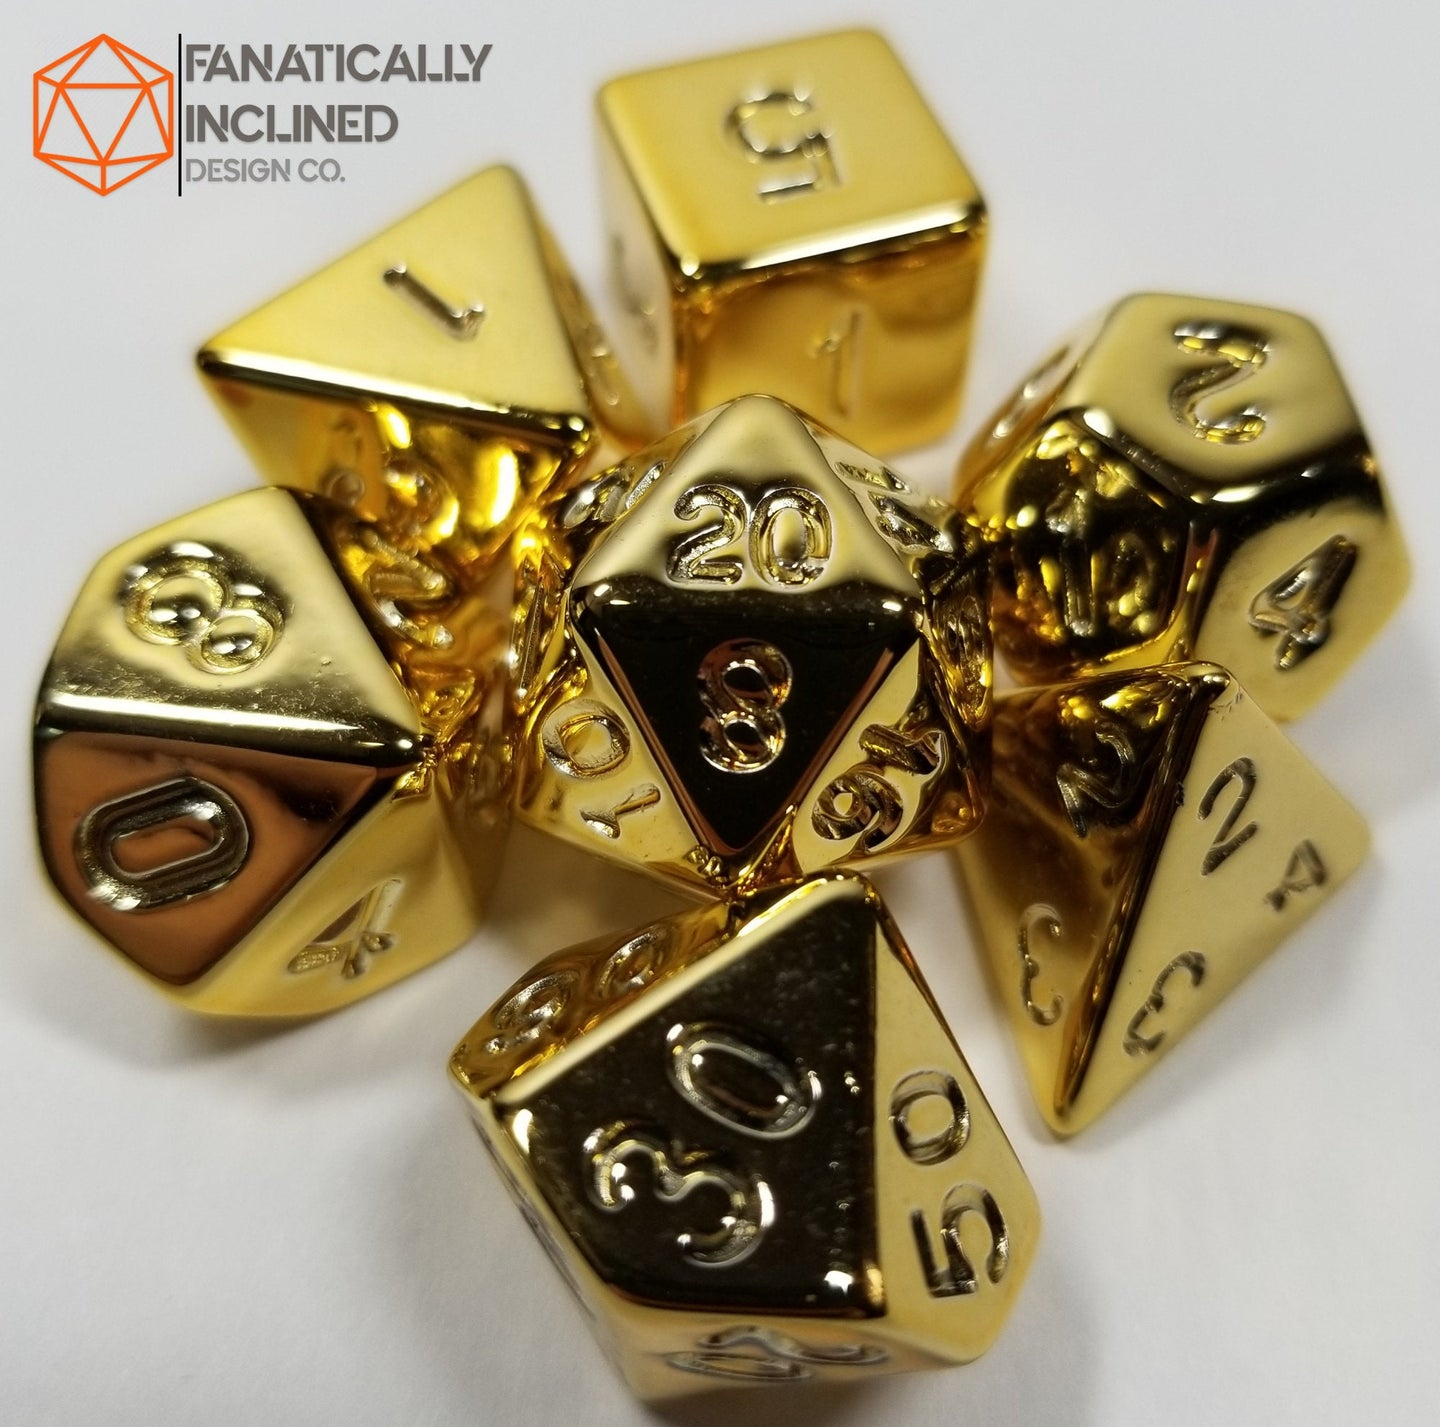 Fools Gold 7pc Resin Dice Set